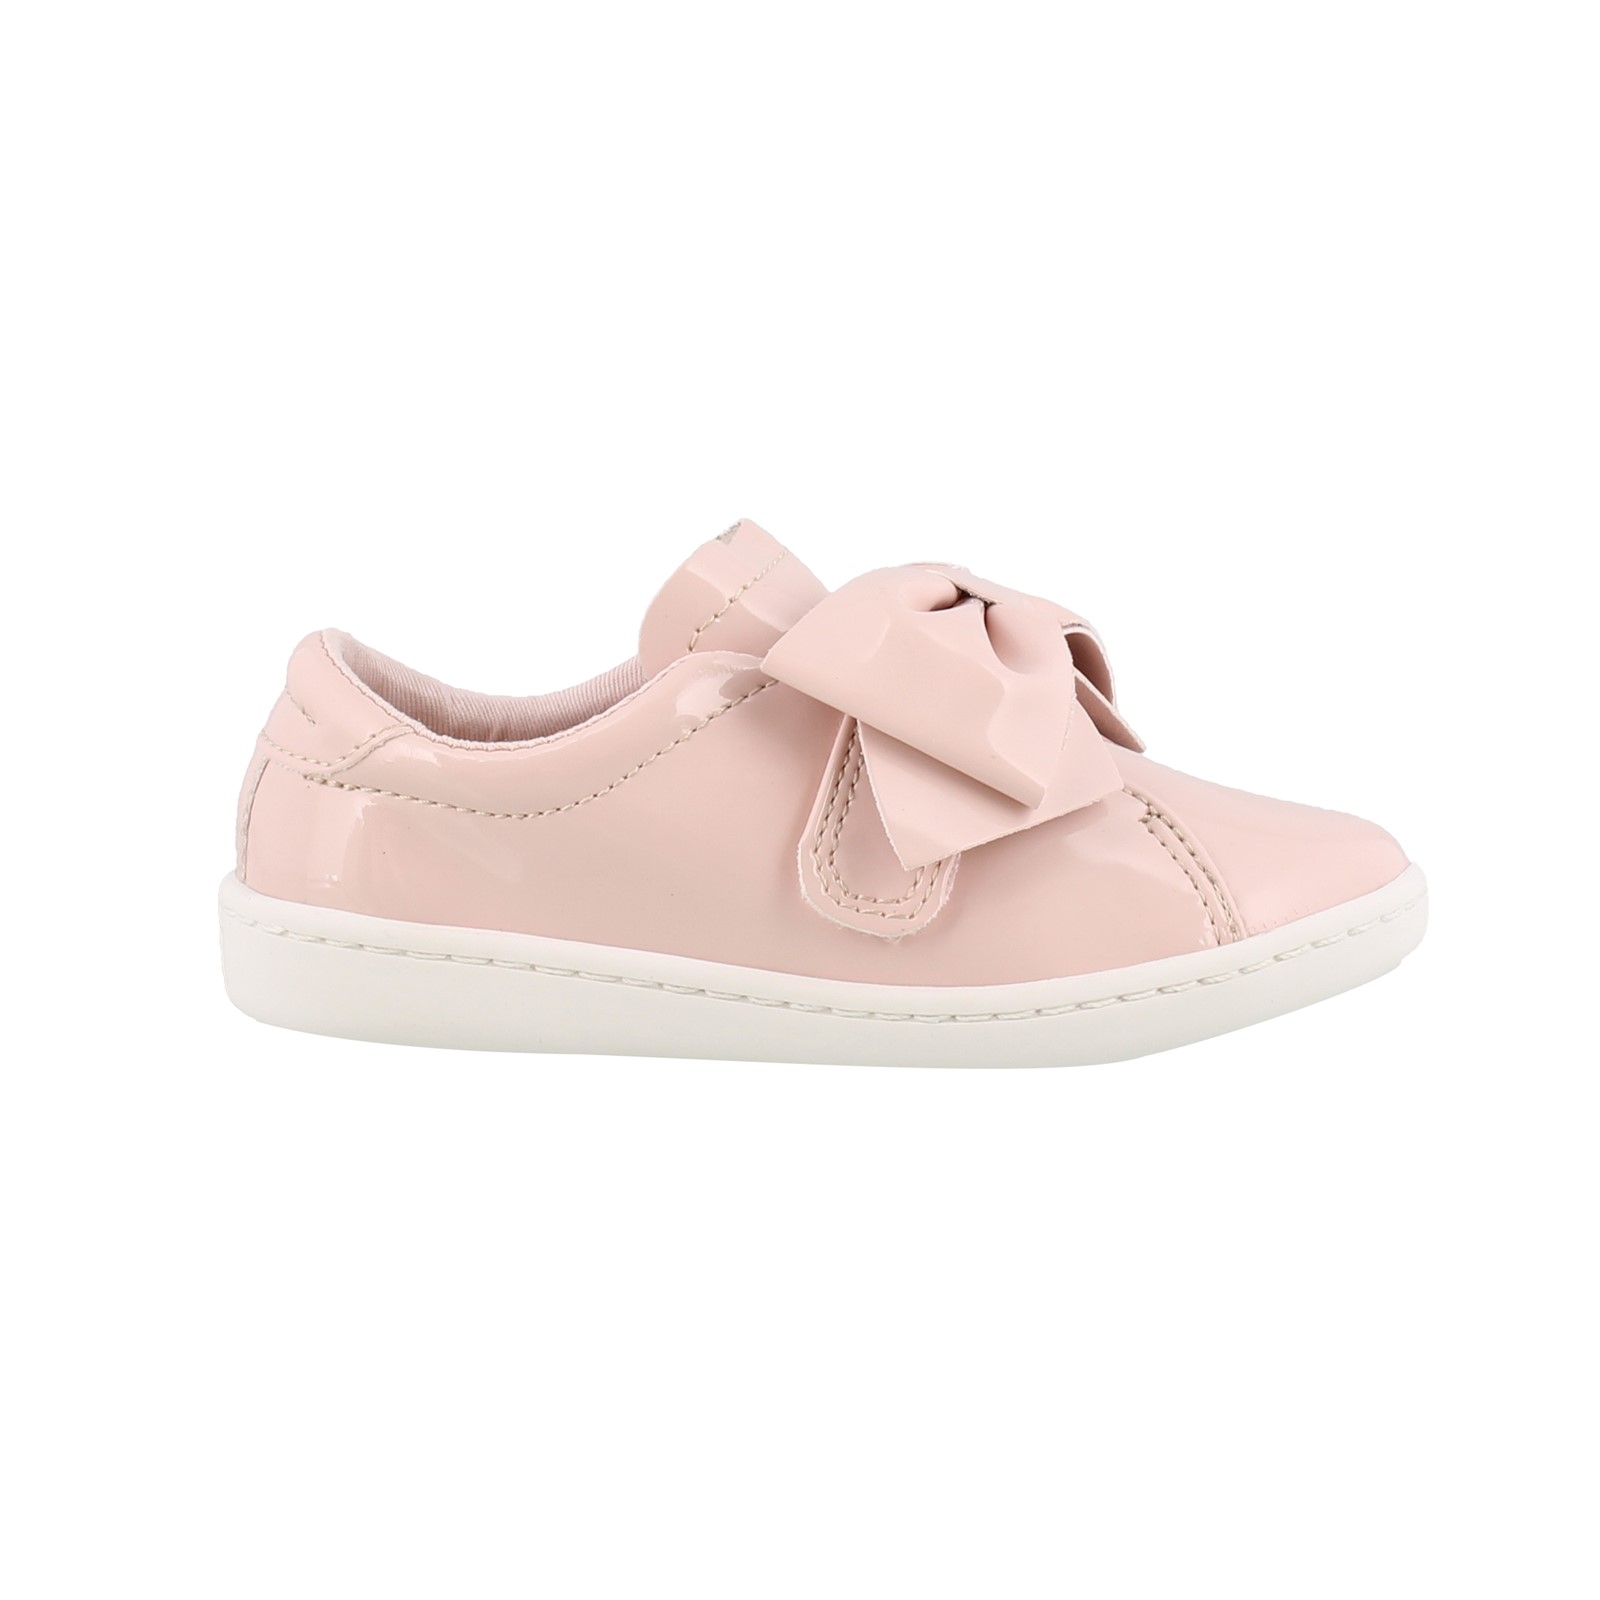 Infant's KEDS KIDS, ACE BOW JR SLIP ON SHOES